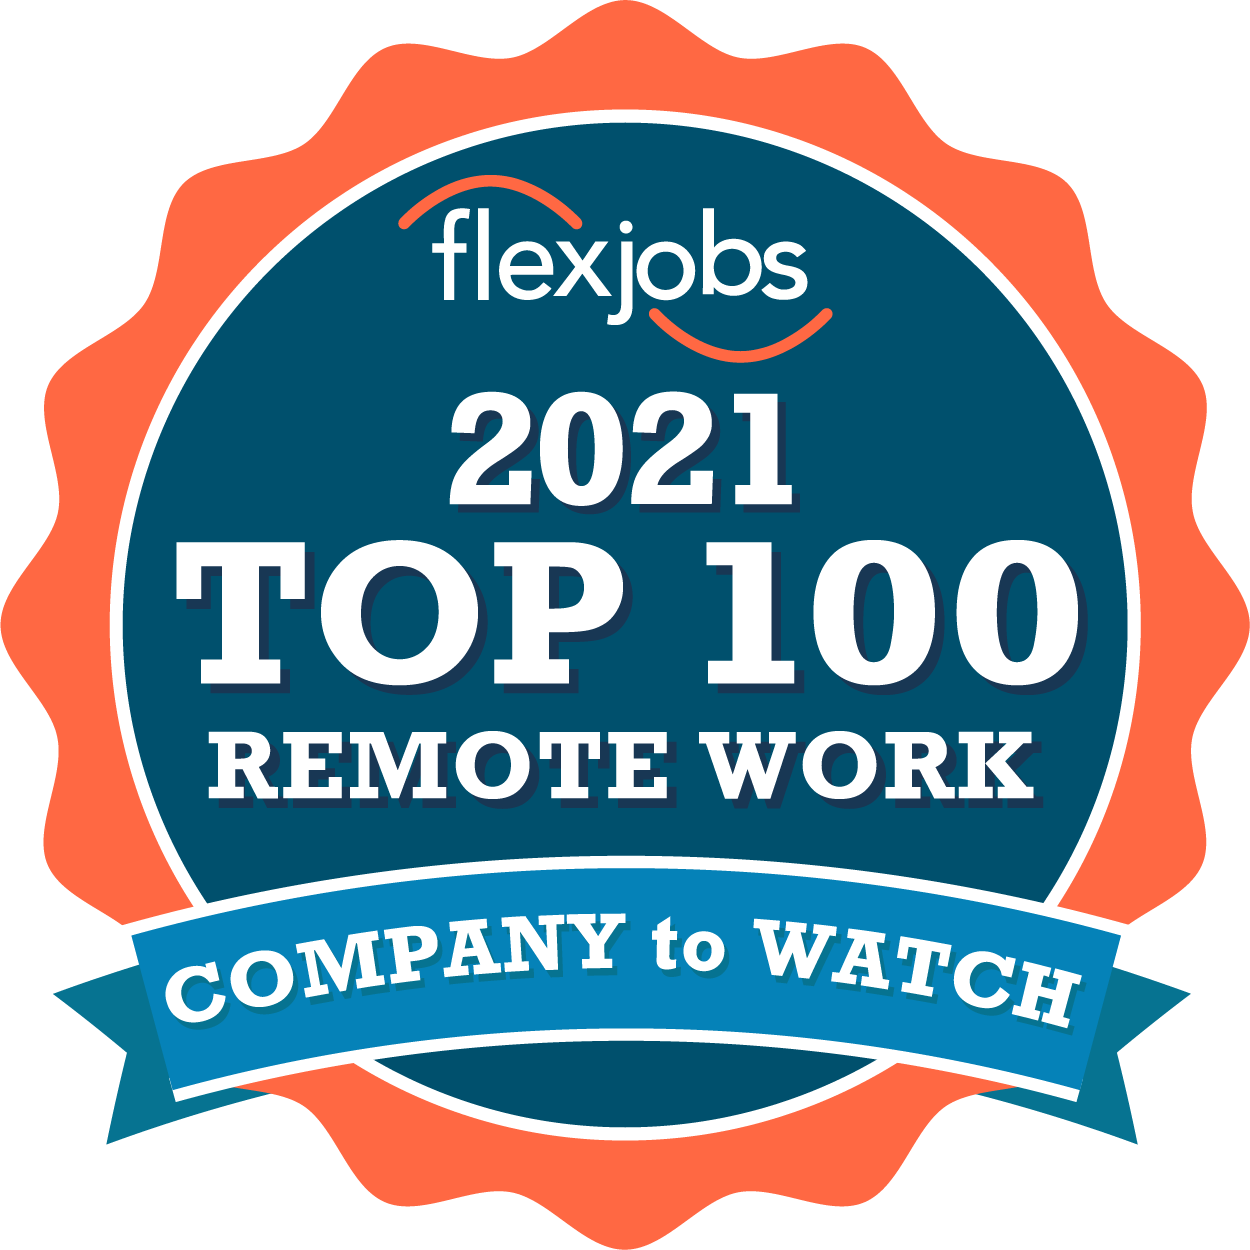 FlexJobs-2021-Top-100-Remote-Work